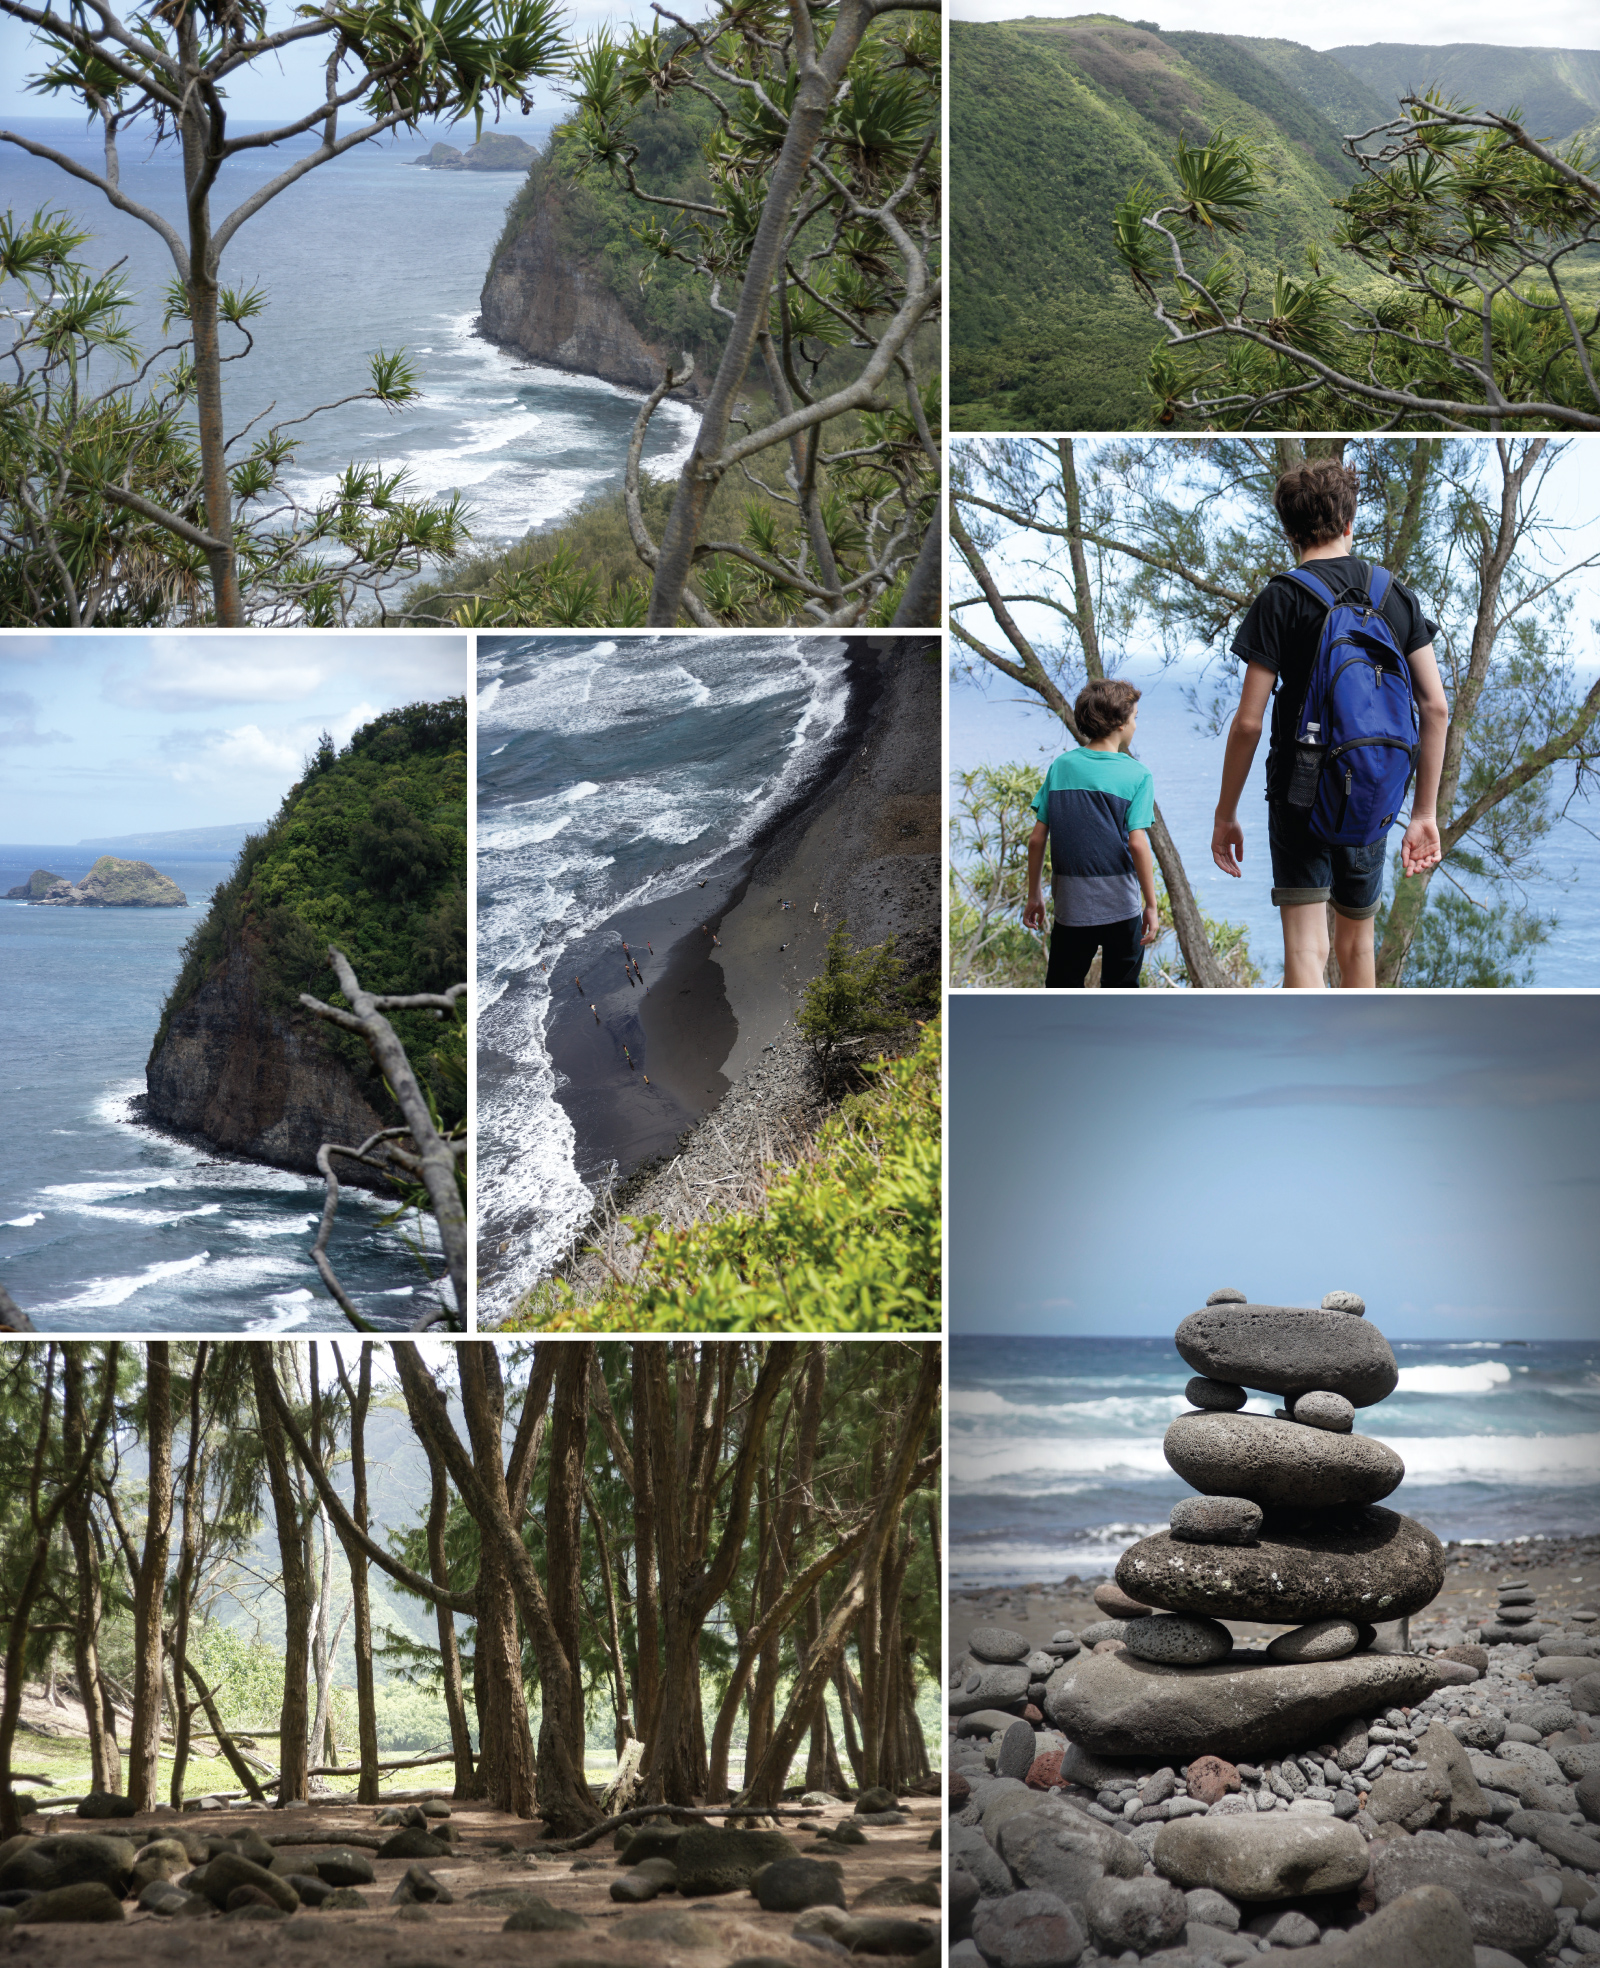 A hike down the cliff to the black sand beach of Pololu Valley.